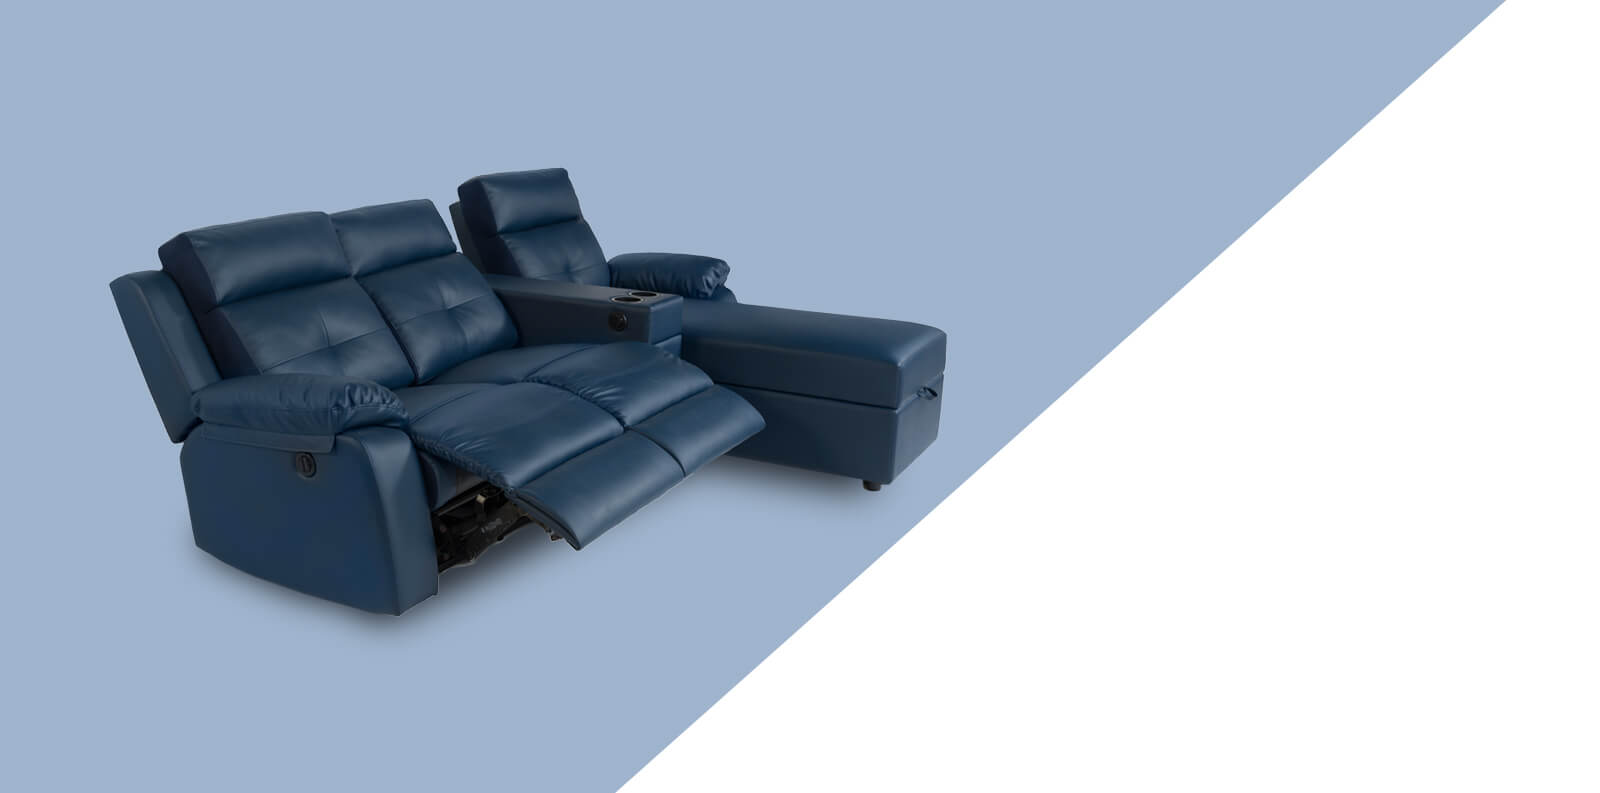 stanley sofa showroom in bangalore smart set recliners india buy recliner chair from manufacturer at architects interior designers